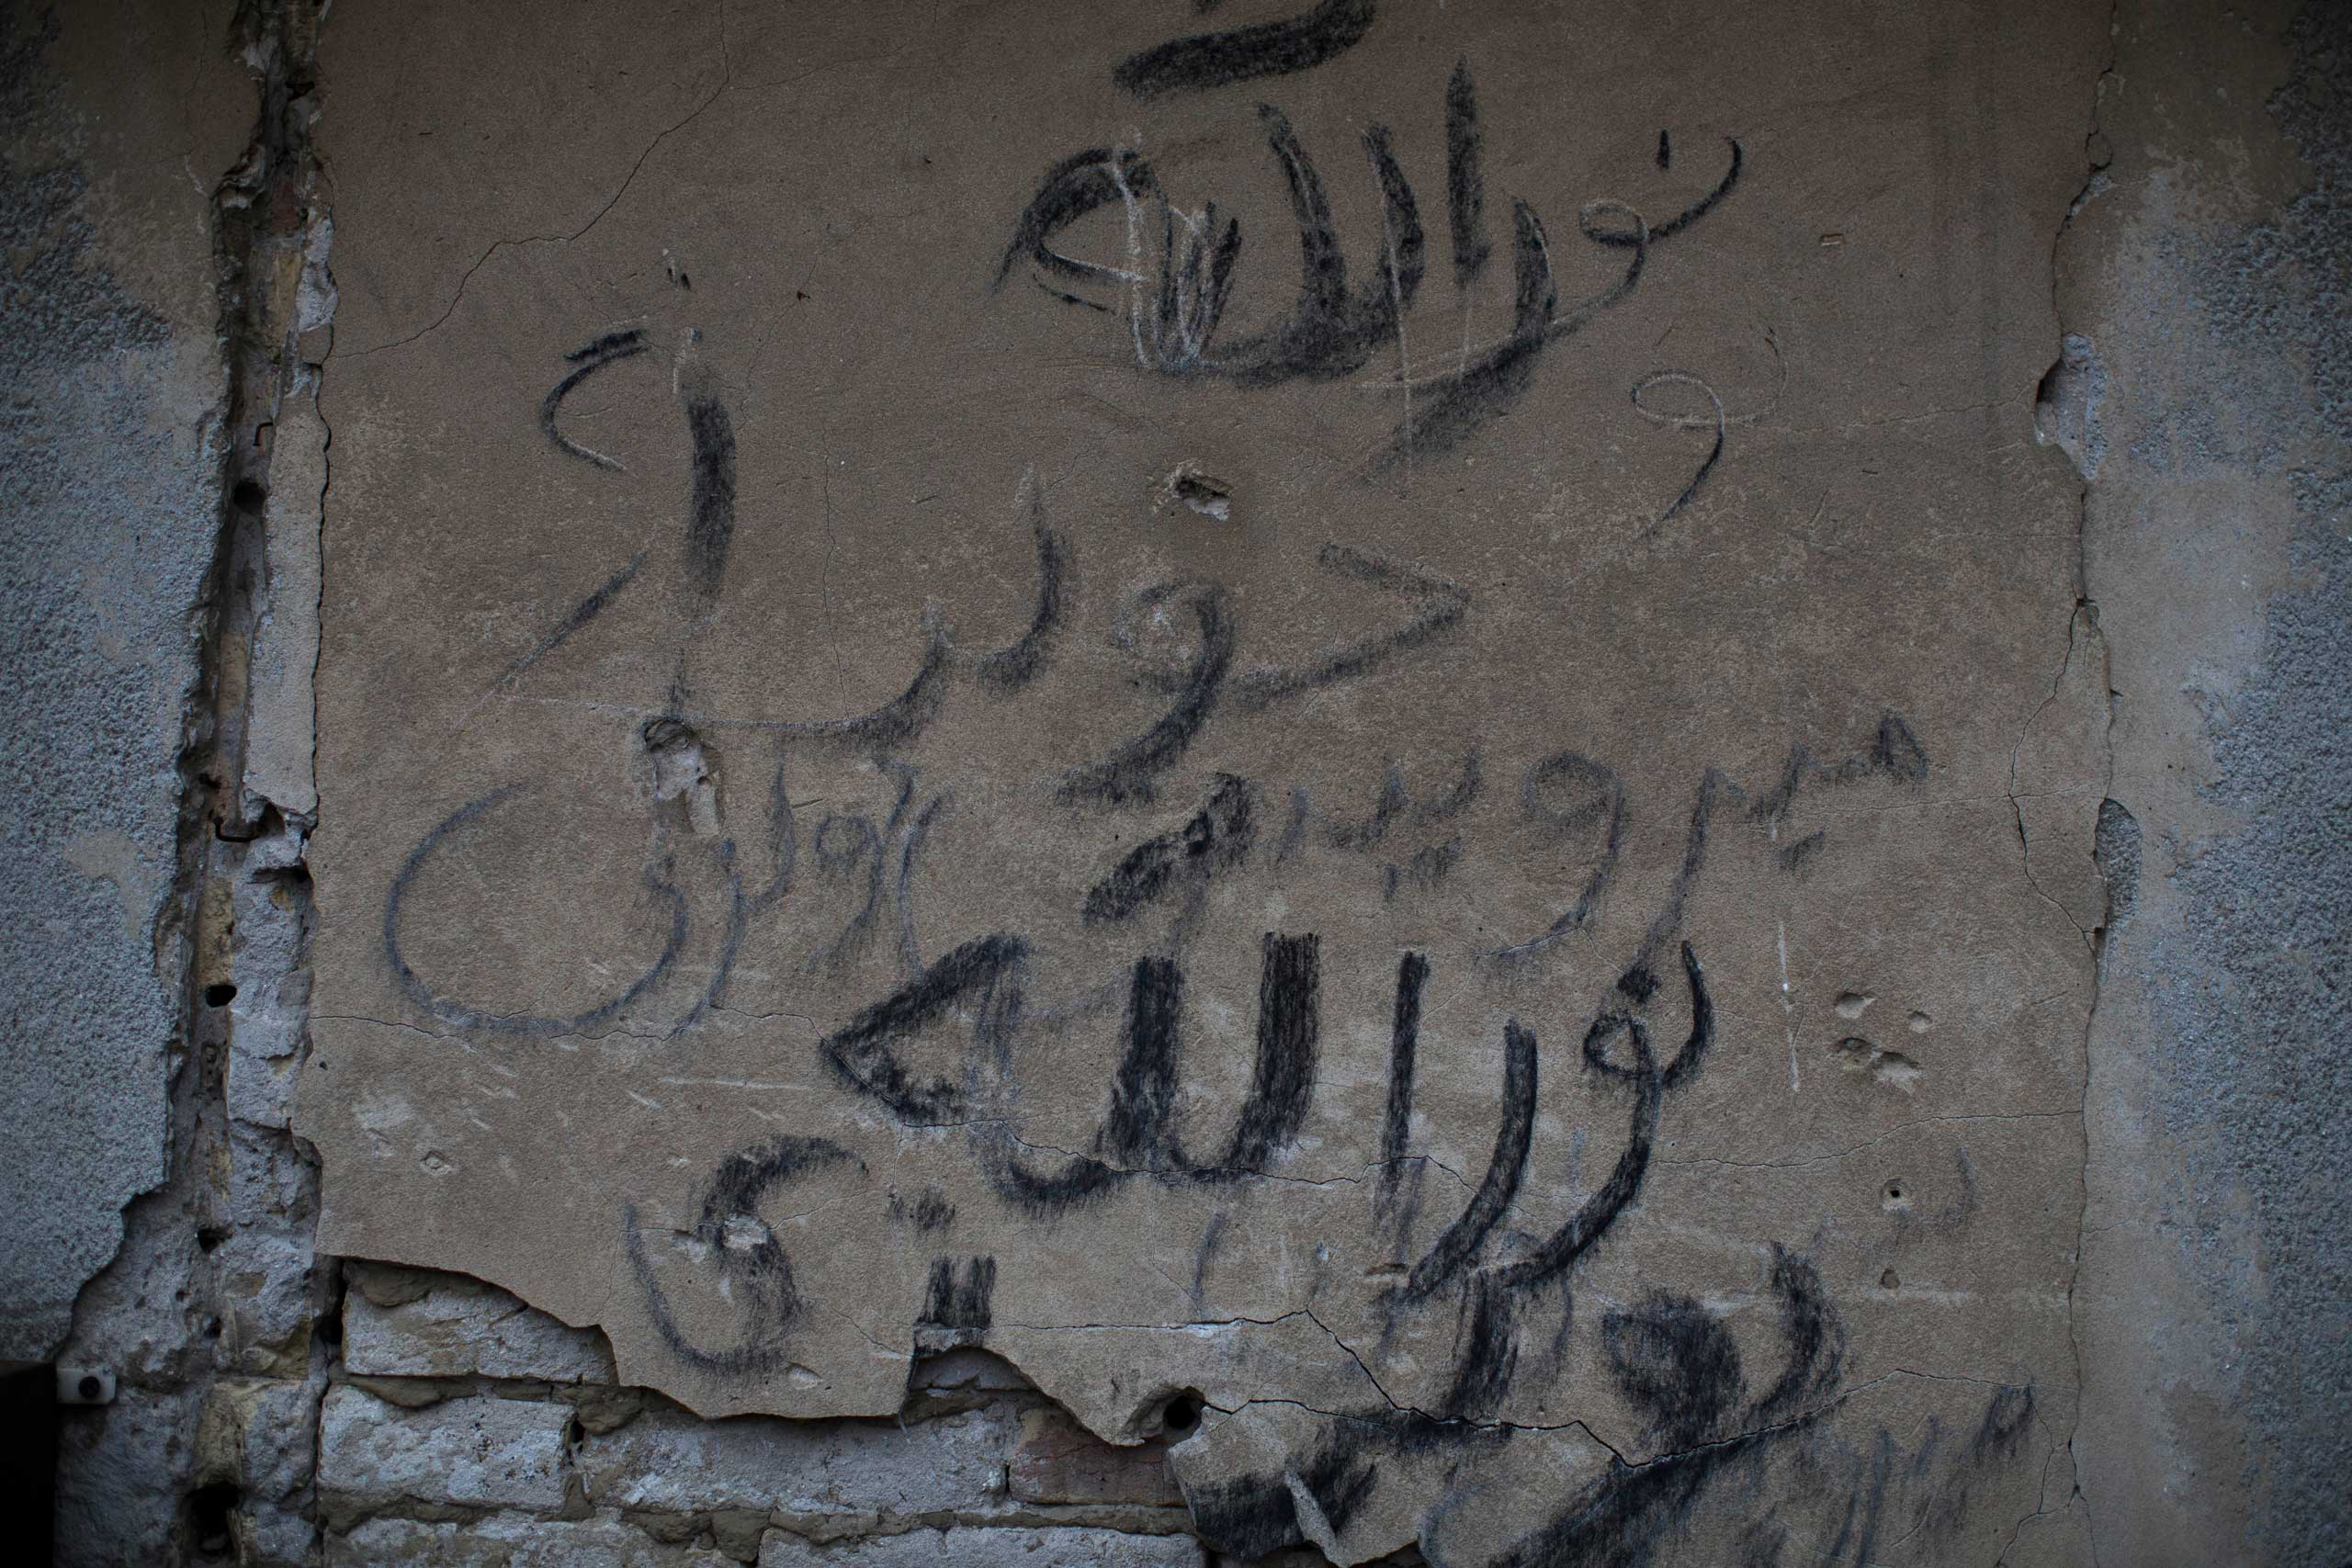 A graffiti in Arabic letters is seen on a wall of an abandoned factory used as a resting point by migrants on the outskirts of Subotica, 90 miles north of Belgrade, Serbia on Feb. 26, 2015.